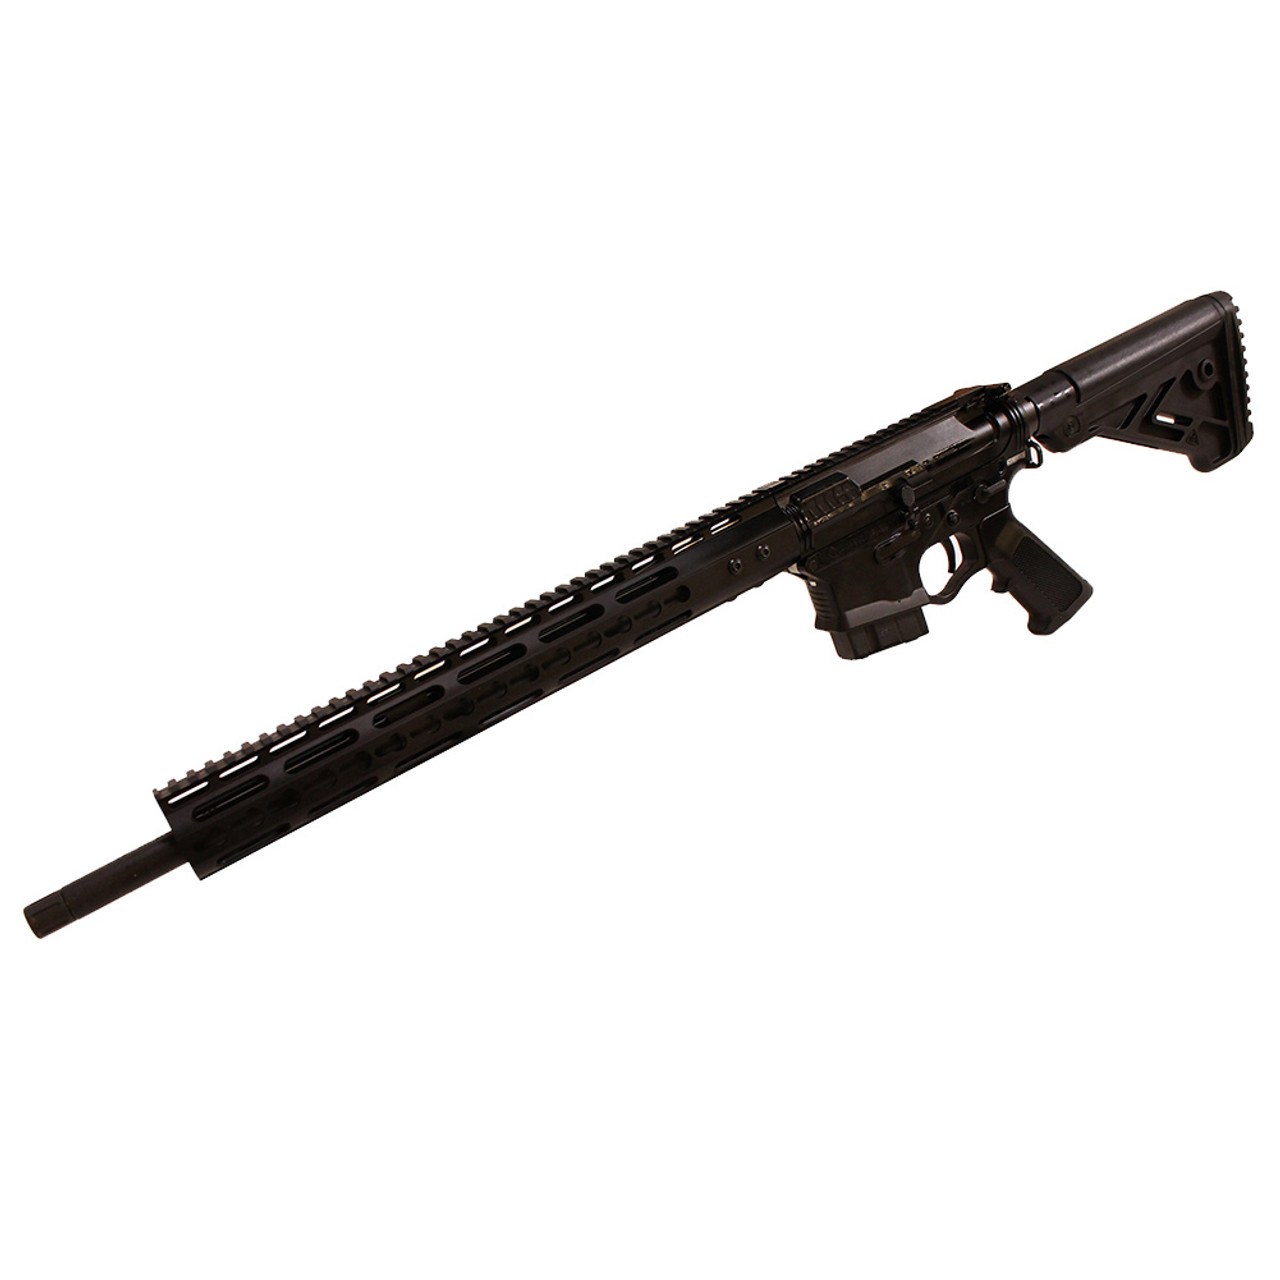 AMERICAN TACTICAL IMPORTS Omhyria  224 Valkyrie 18in 10rd Semi-Automatic  Rifle (ATIGOMX224VAL18)